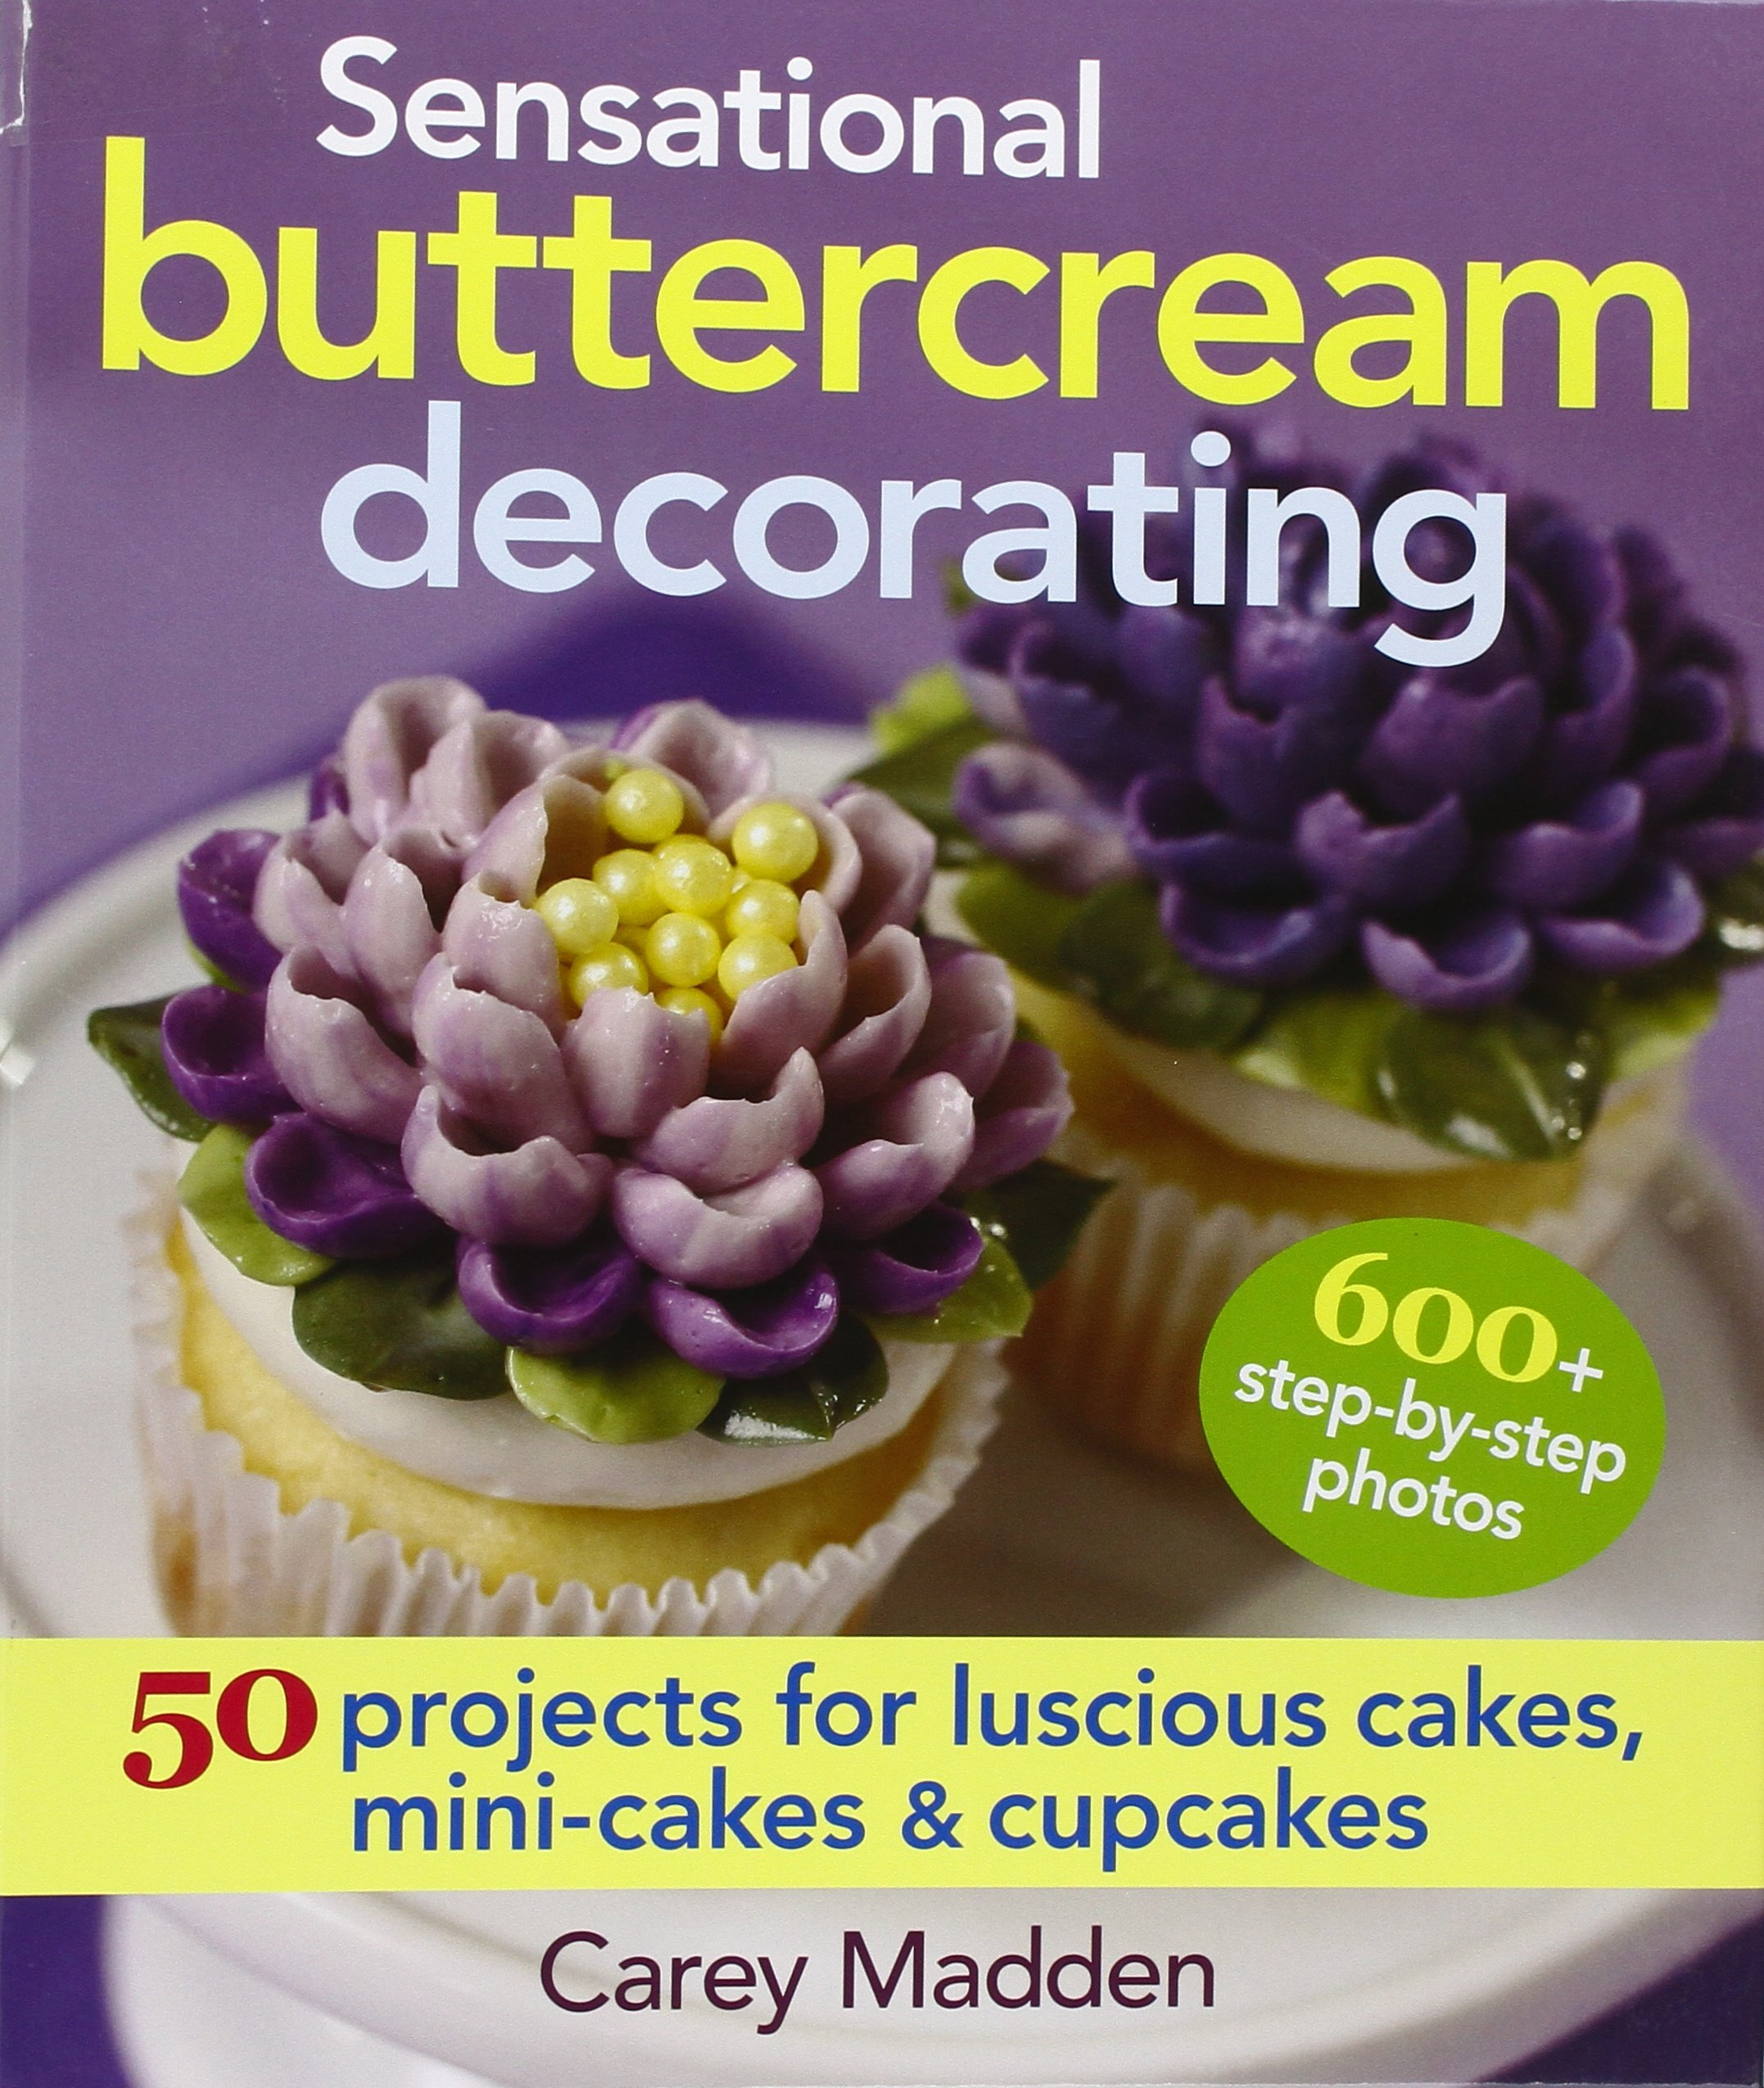 Sensational Buttercream Decorating: 50 Projects for Luscious Cakes, Mini-Cakes and Cupcakes by Robert Rose